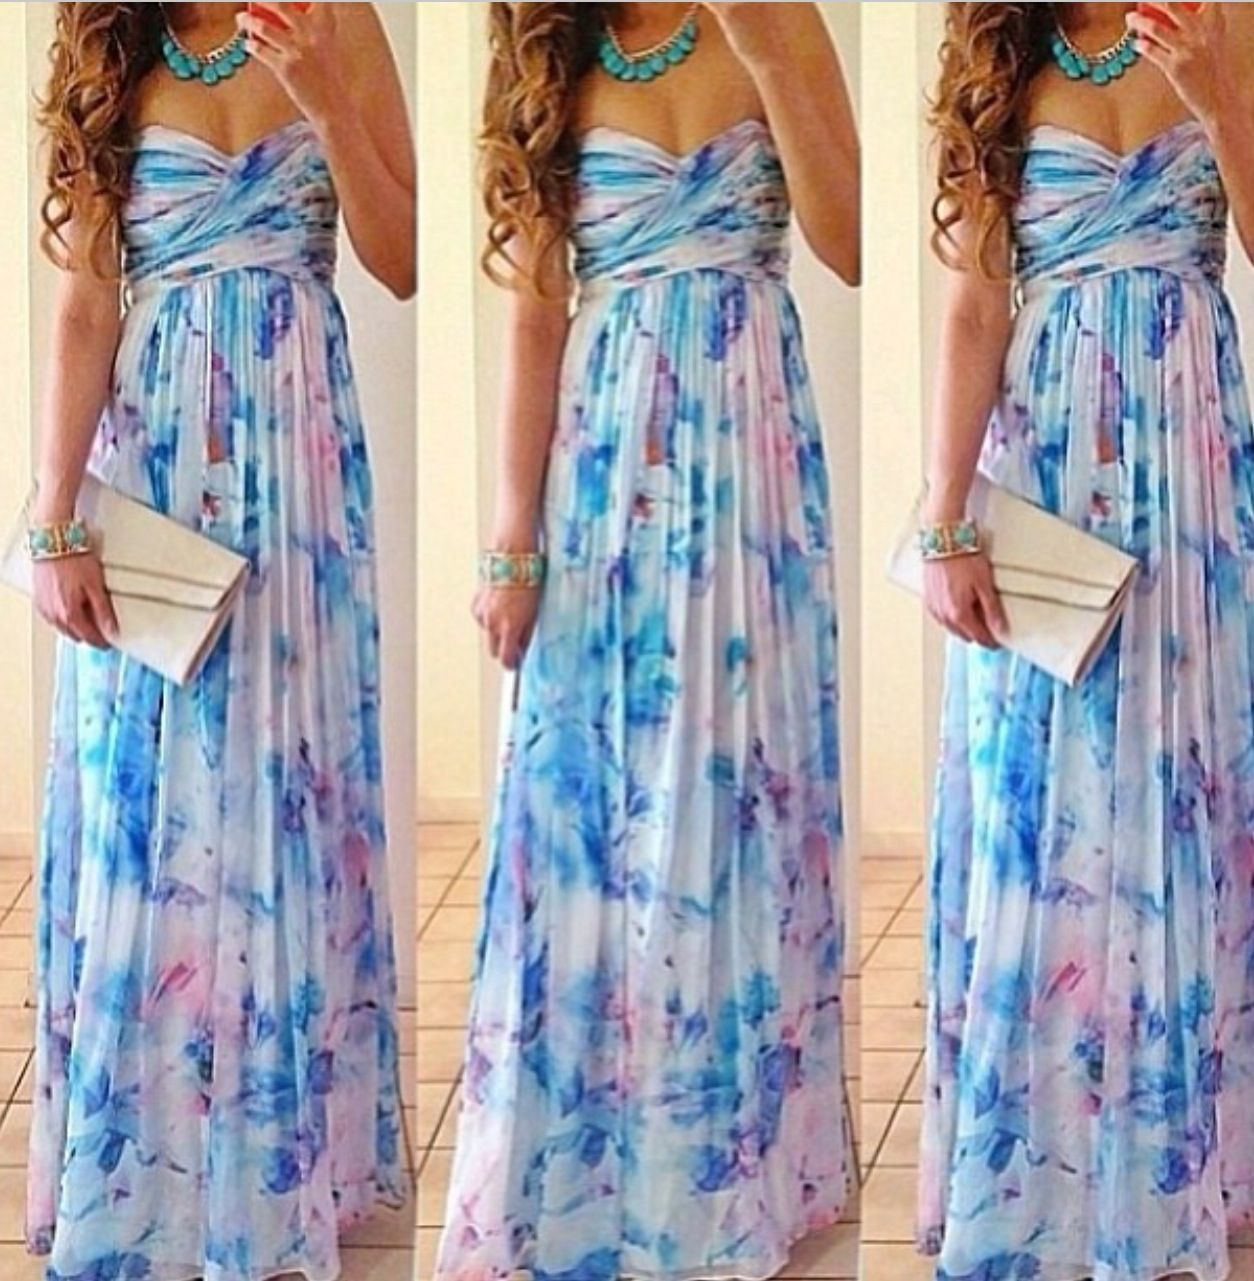 Outdoor summer wedding dresses  maxi dressI HATE pins like this they never lead to where you can